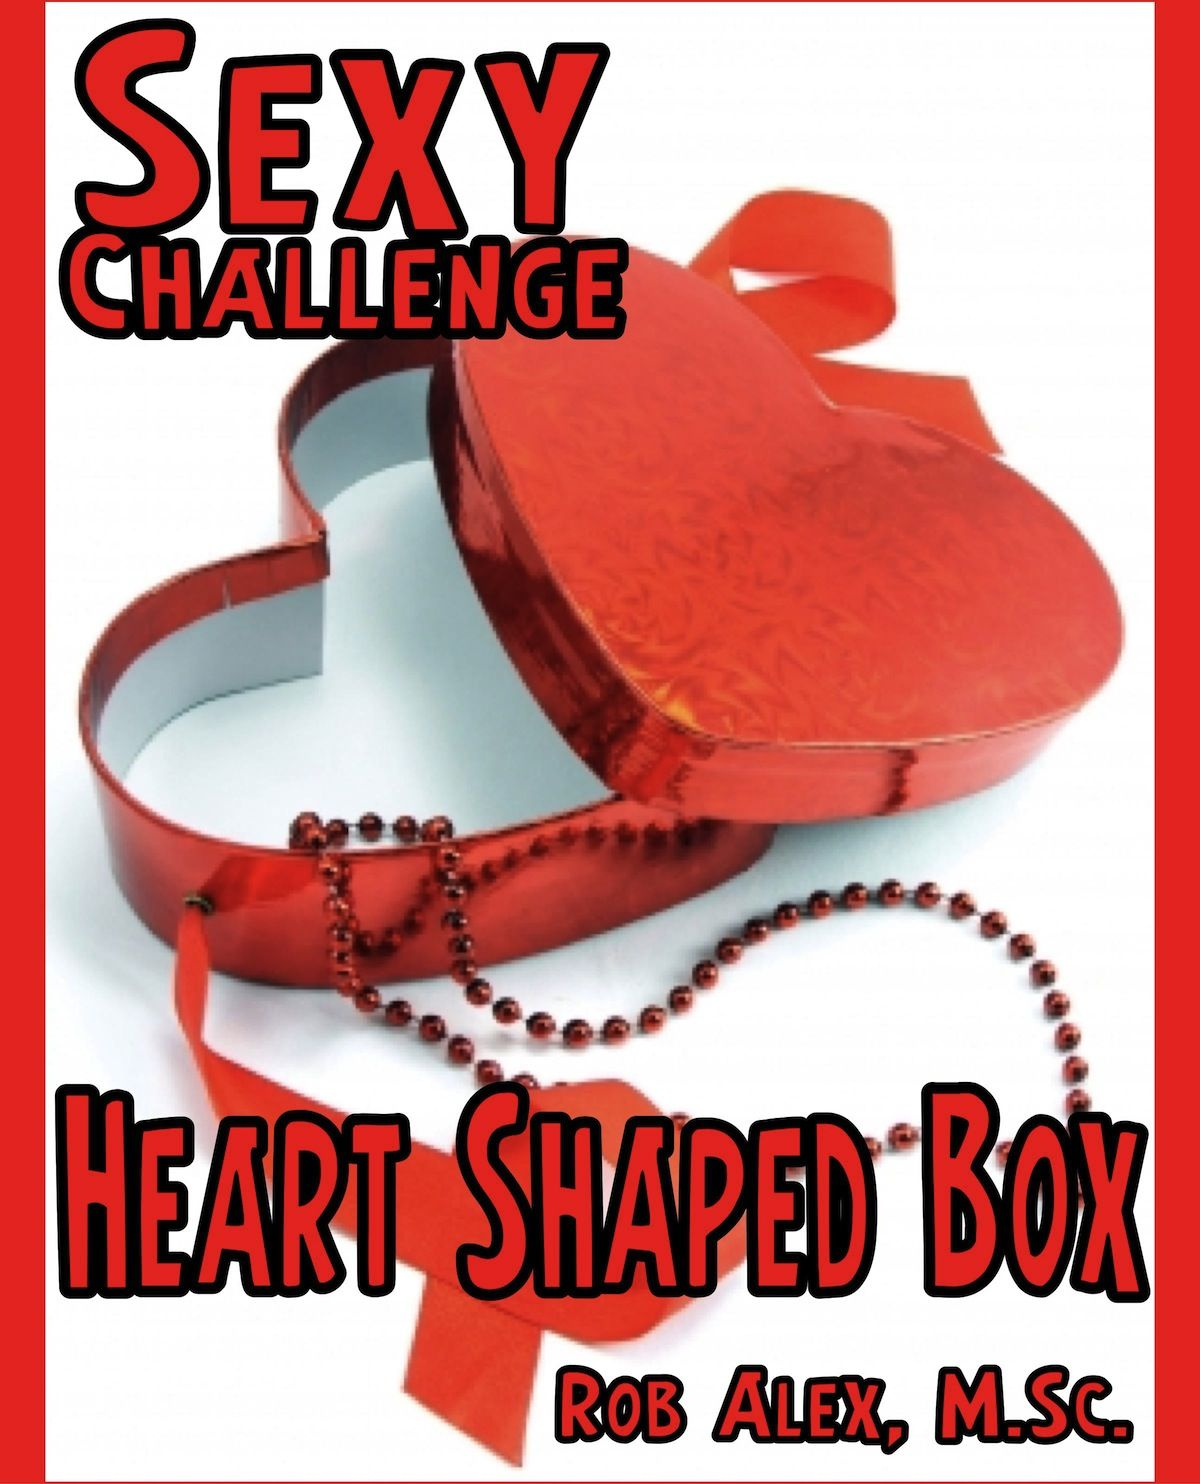 Romantic Antics for Men (and Women, too): Sexy Challenge's Heart Shaped Box